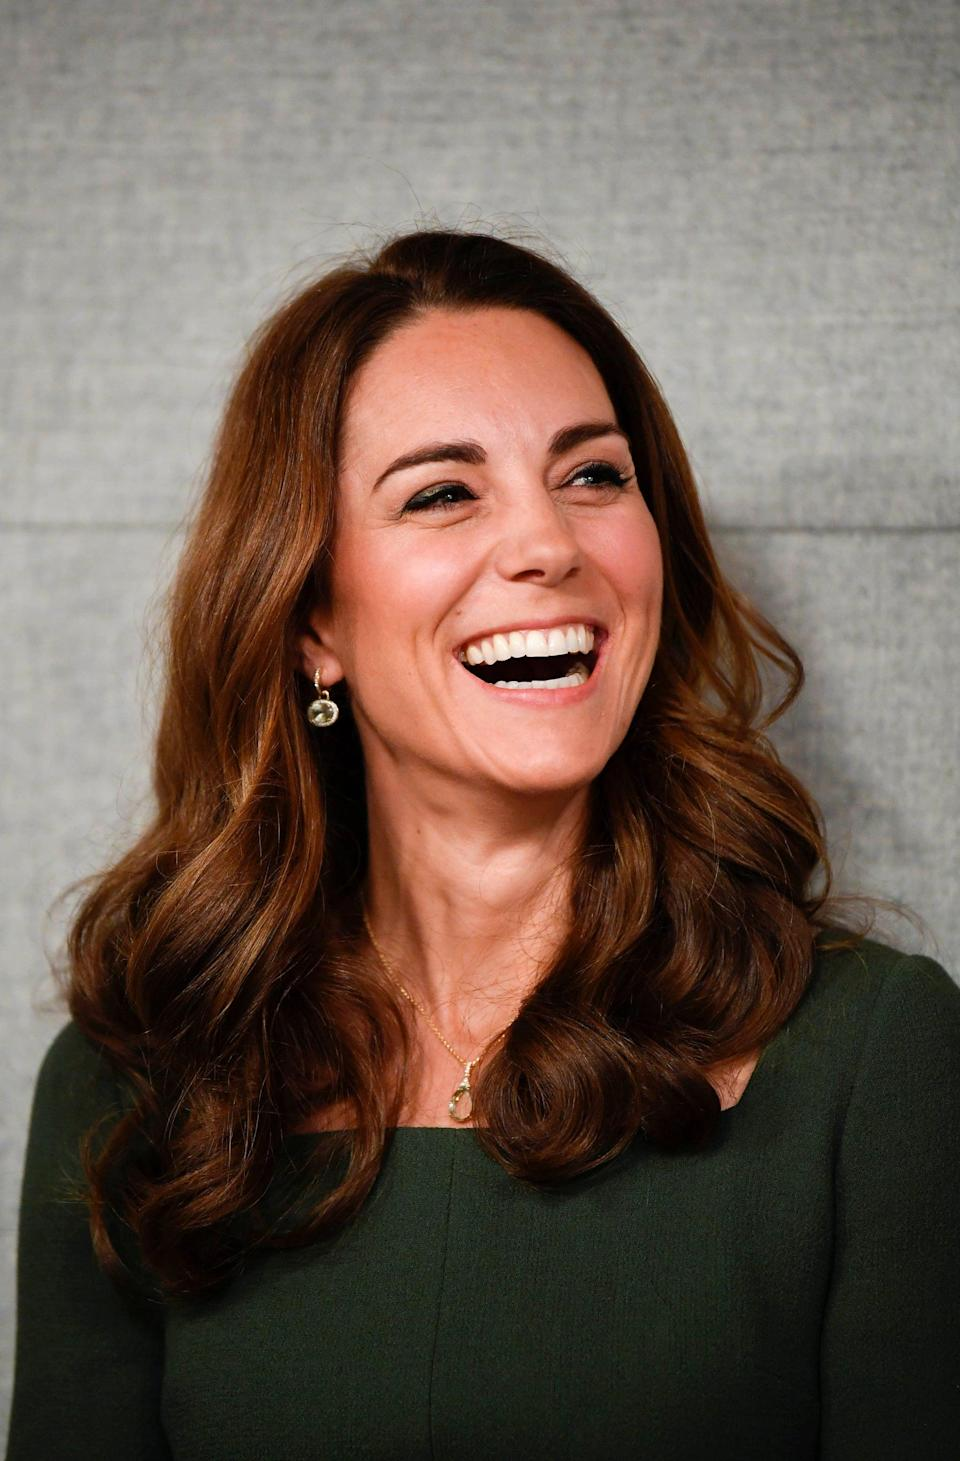 <p>For a day out on royal duties, Middleton decided to wear her hair in very loose curls, which can be achieved by wrapping medium sections of hair around a large curling iron, making sure the ends are touching the barrel as well. </p>